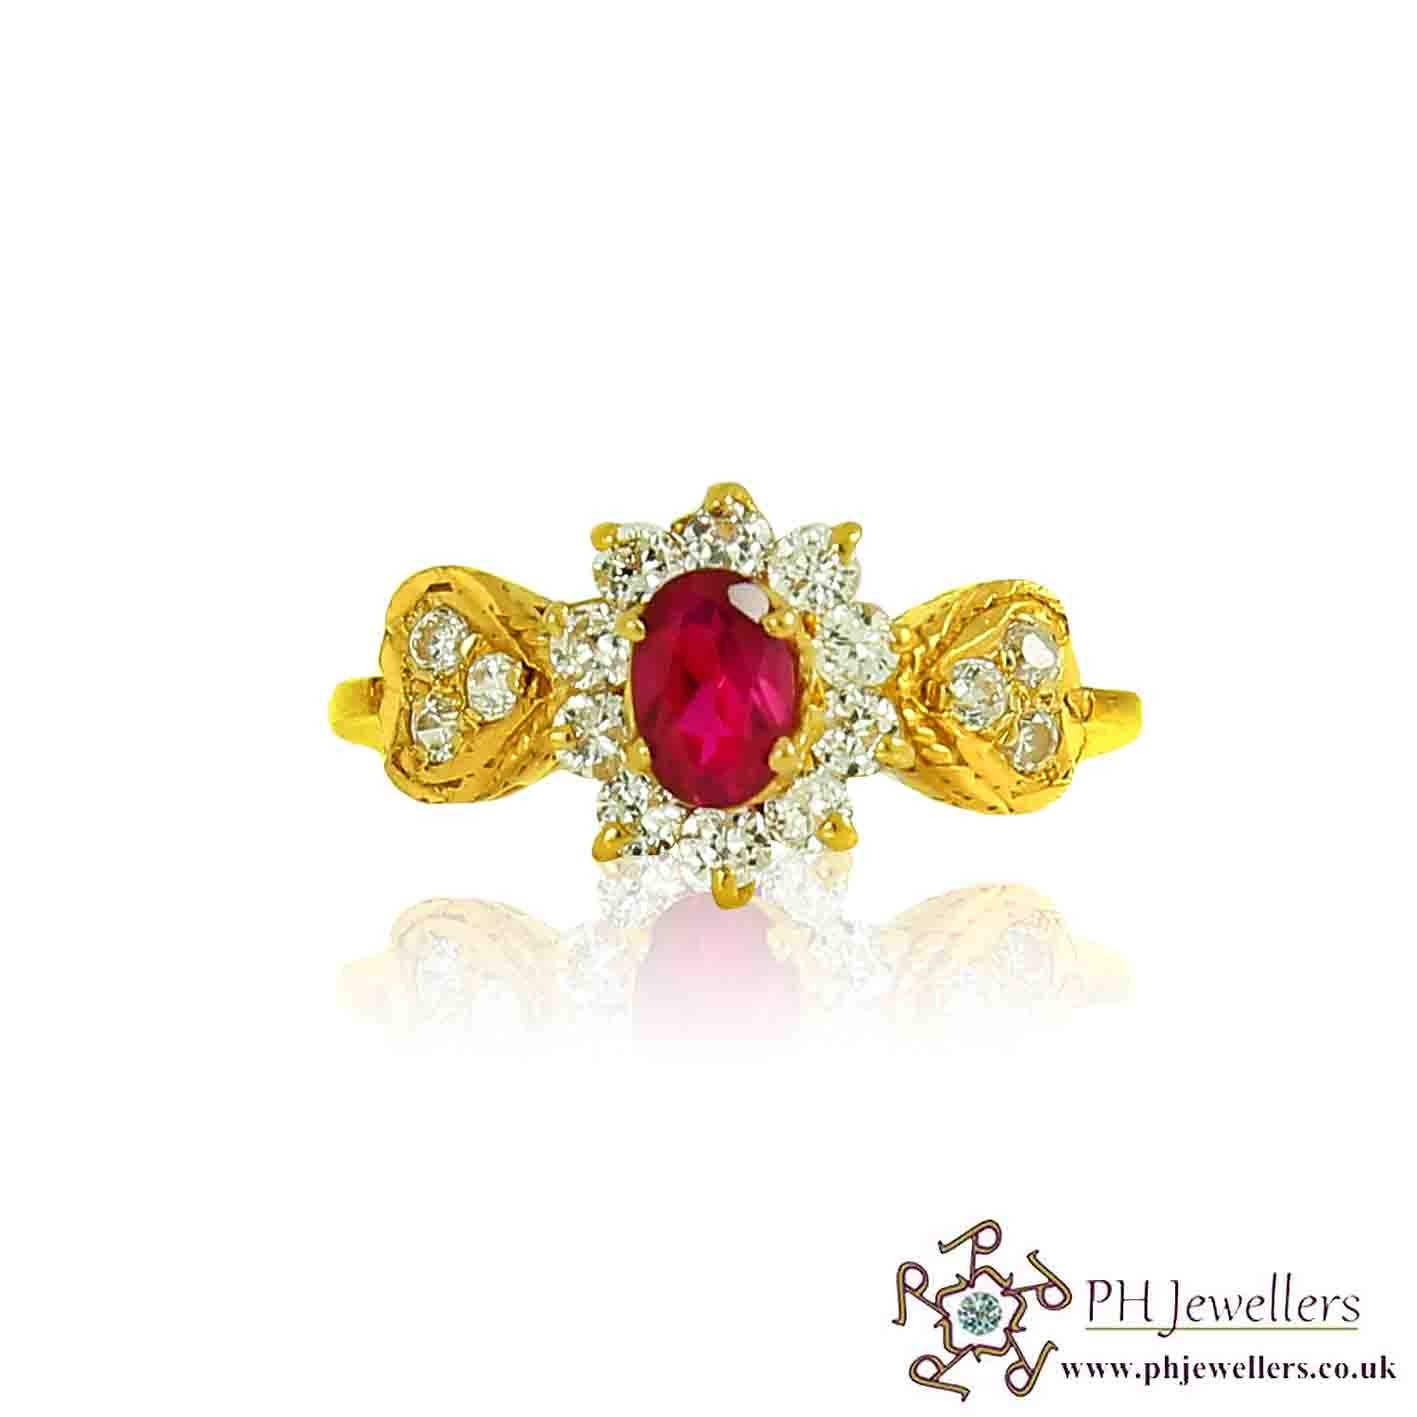 22ct 916 Hallmark Yellow Gold Flower Oval Ruby Size O,P Ring CZ SR96